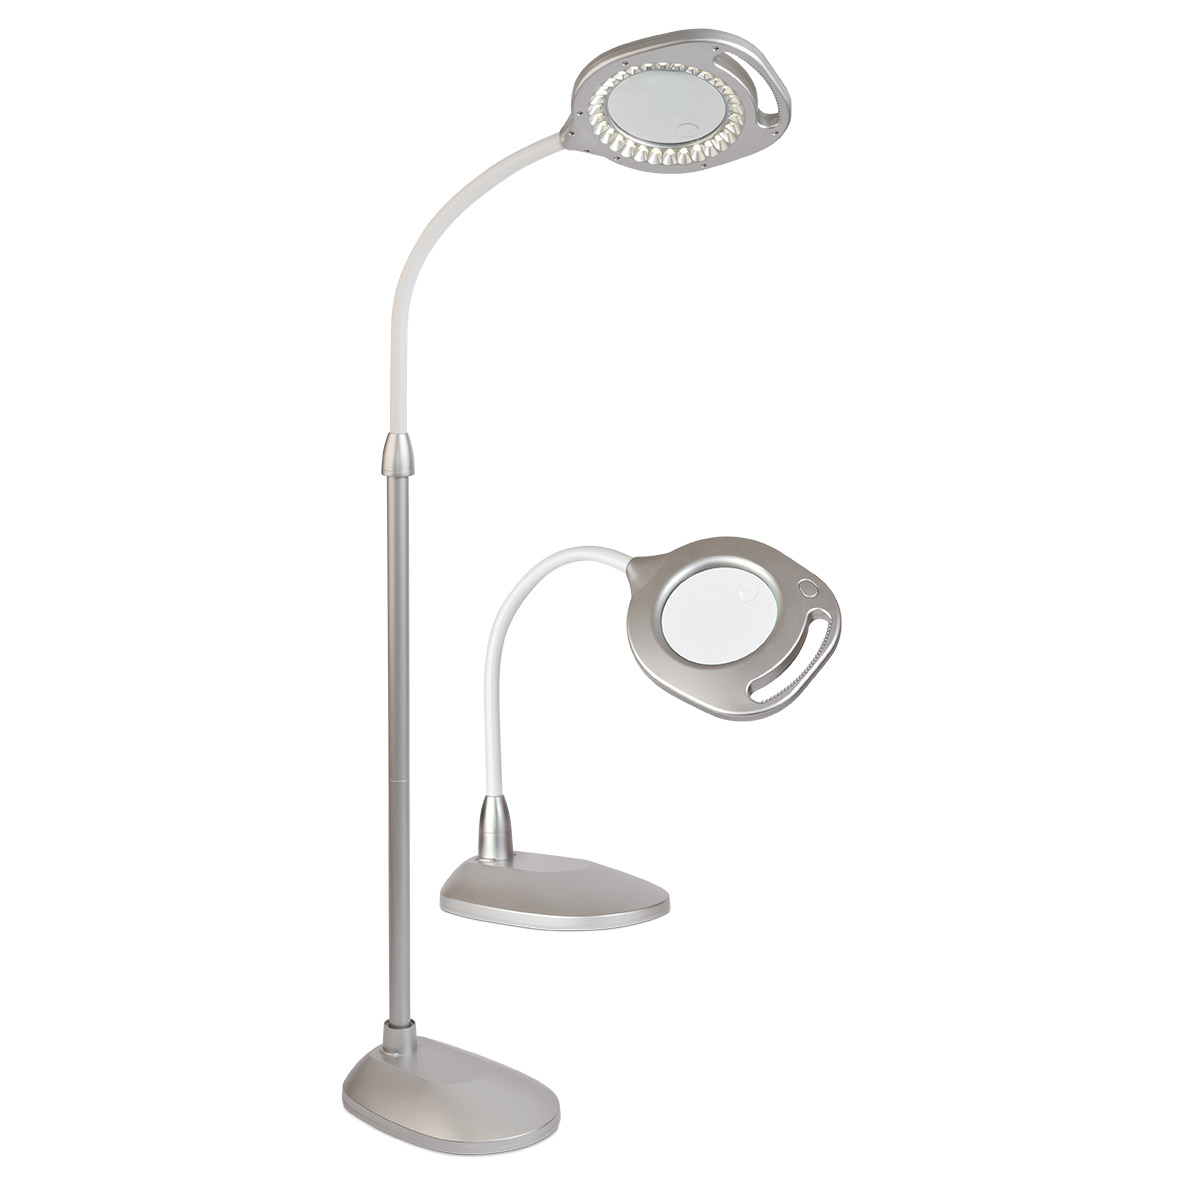 OttLite® 2-in-1 LED Floor & Table Light